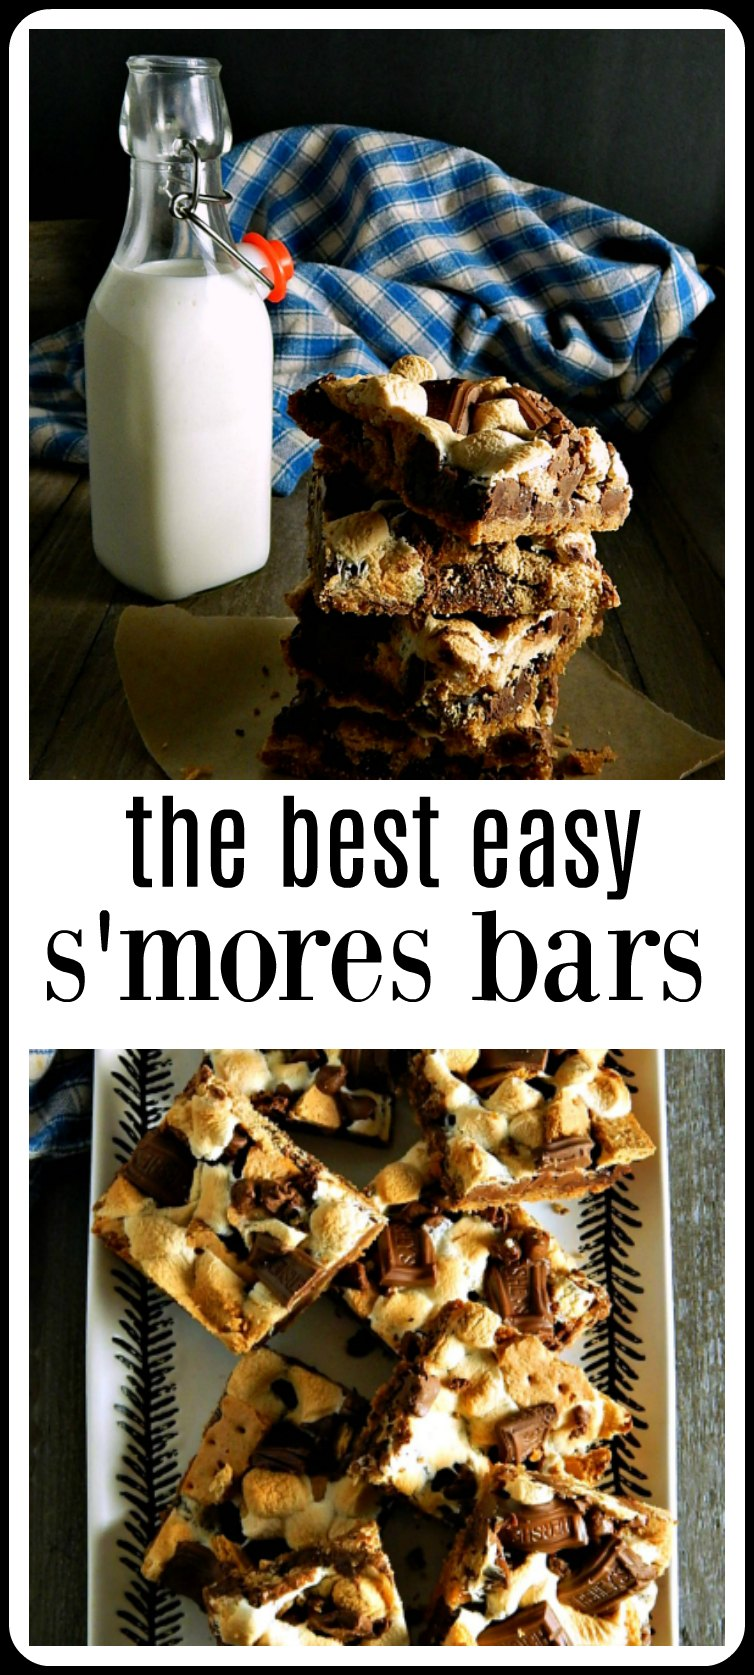 The Best Easy S'more Bars - super simple to make and they'll be the hit of the party! Graham Cracker, melty chocolate and ooey, gooey marshmallow! 30 minutes to make! #SmoresBars #BestEasySmoresBars #BestSmoresBars #EasySmoresBars